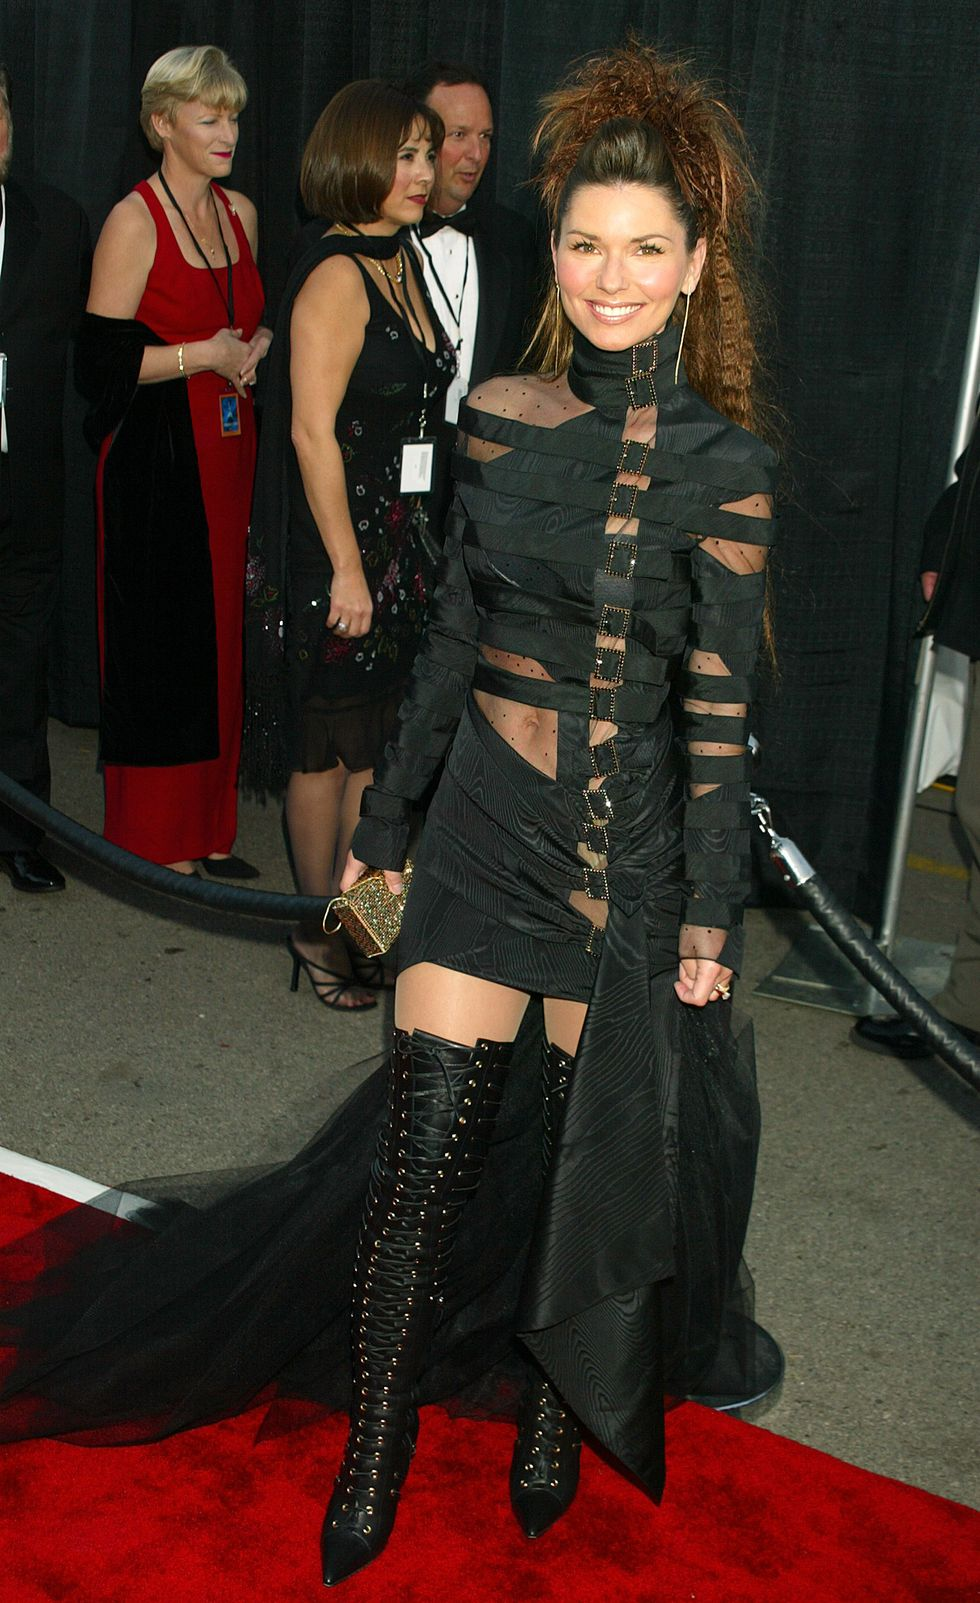 Shania Twain during The 30th Annual American Music Awards - Arrivals at Shrine Auditorium in Los Angeles, California, United States. (Photo by Jeffrey Mayer/WireImage)